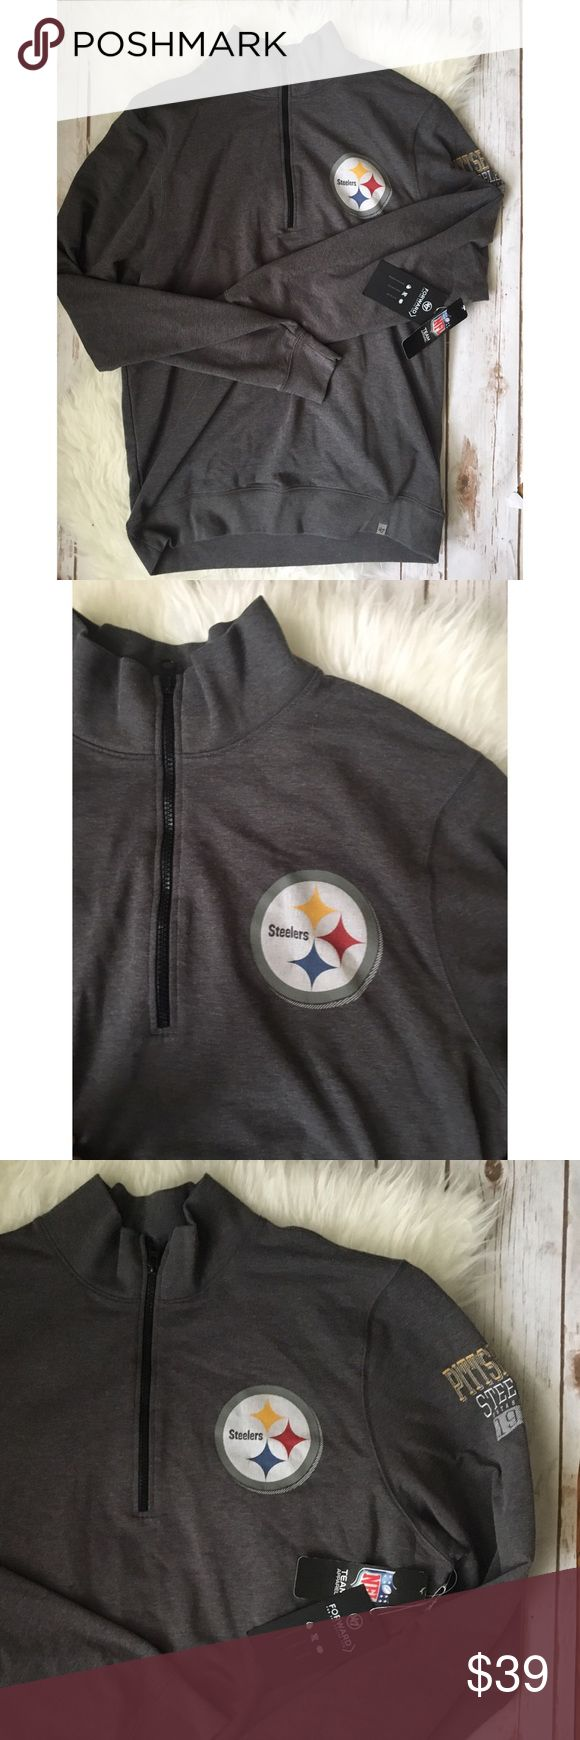 NWT men's Pittsburgh Steelers NFL sweatshirt large New with tags size Large men's NFL Pittsburgh Steelers half zip grey sweatshirt. Just like the picture, but it says steelers on the arm! Sweaters